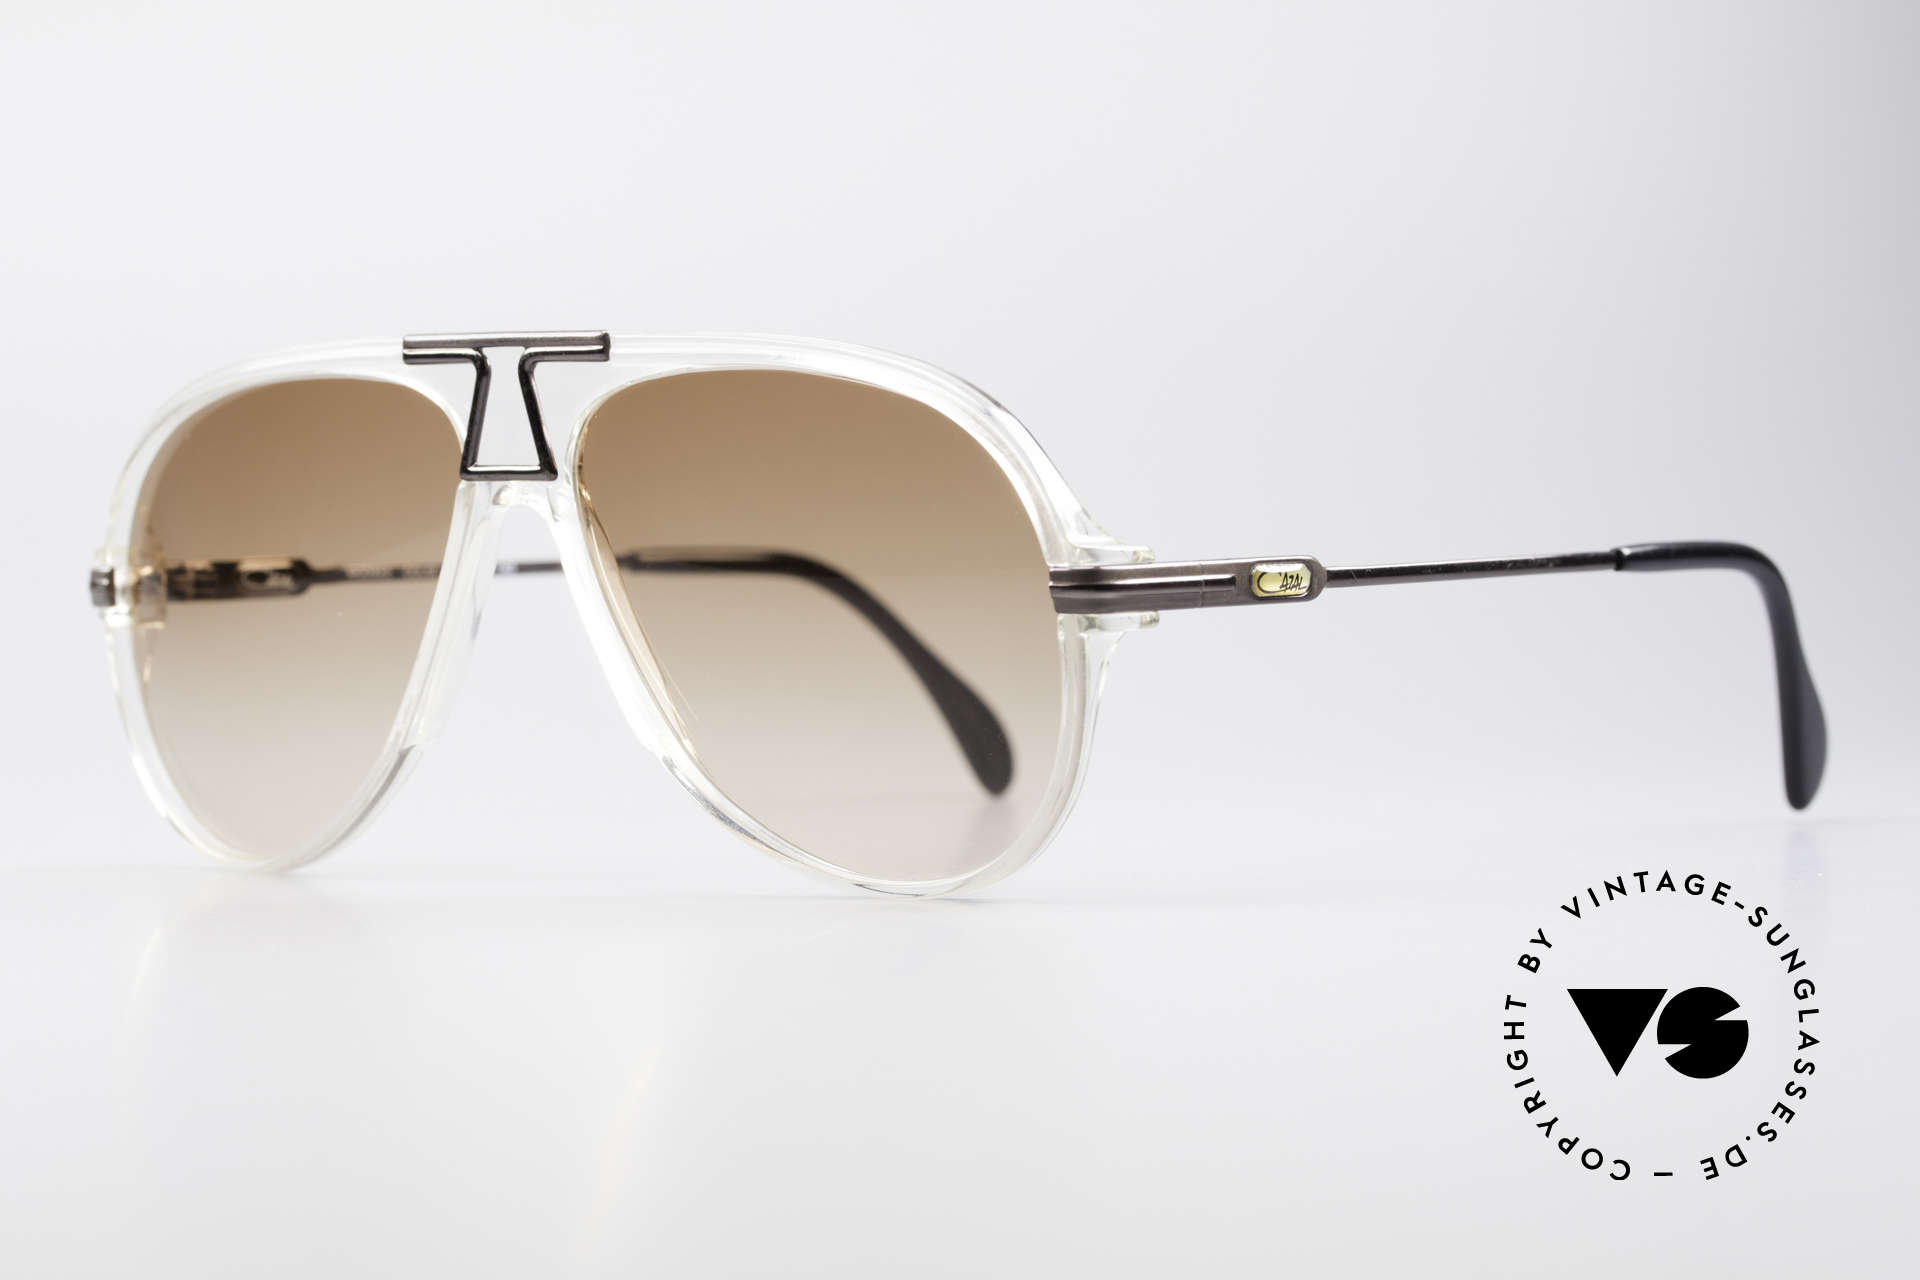 Cazal 622 Vintage 80's Aviator Sunglasses, crystal frame coloring (typically 80's), true vintage!, Made for Men